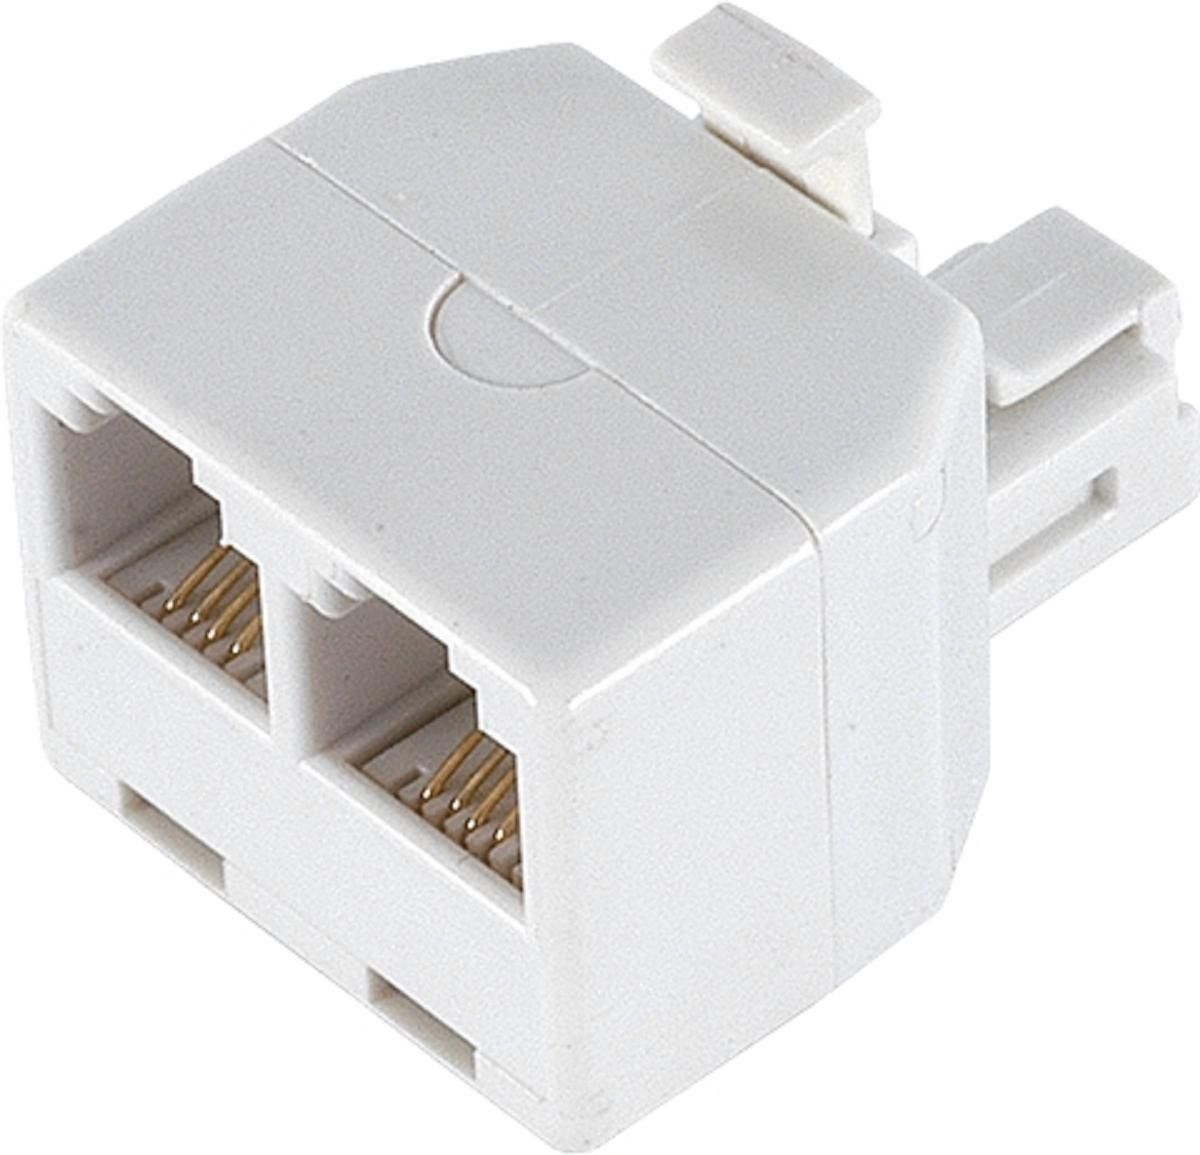 Ge 26191 Duplex Wall Jack Adapter White 4 Conductor By Jasco Electronic Products Modular Phone Telephone Accessories